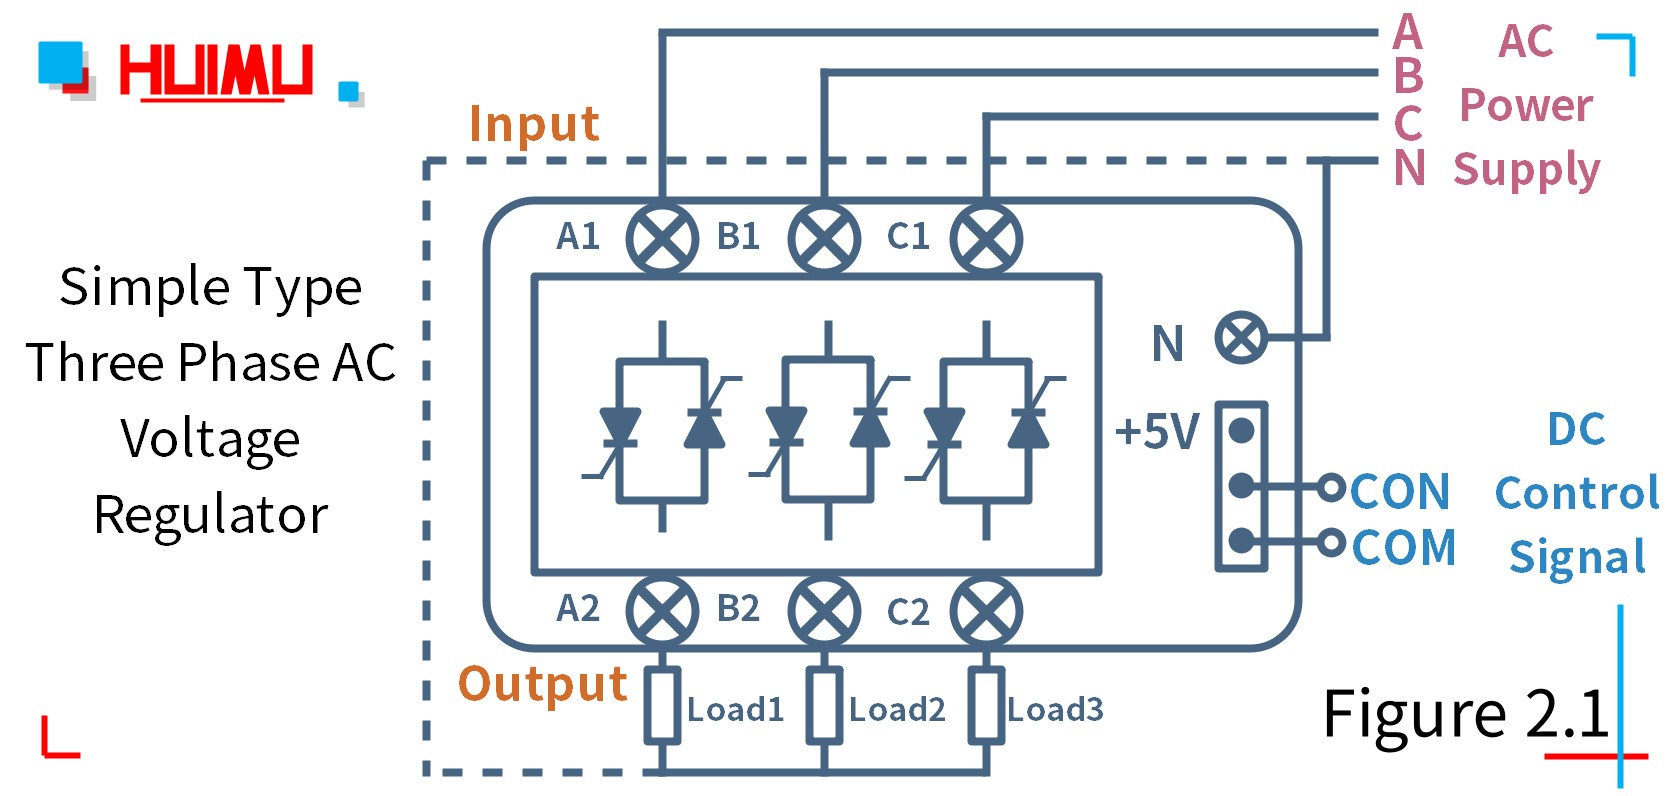 How to wire MGR mager MGR-SCR3-120LA simple type three phase AC voltage regulator? More detail via www.@huimultd.com